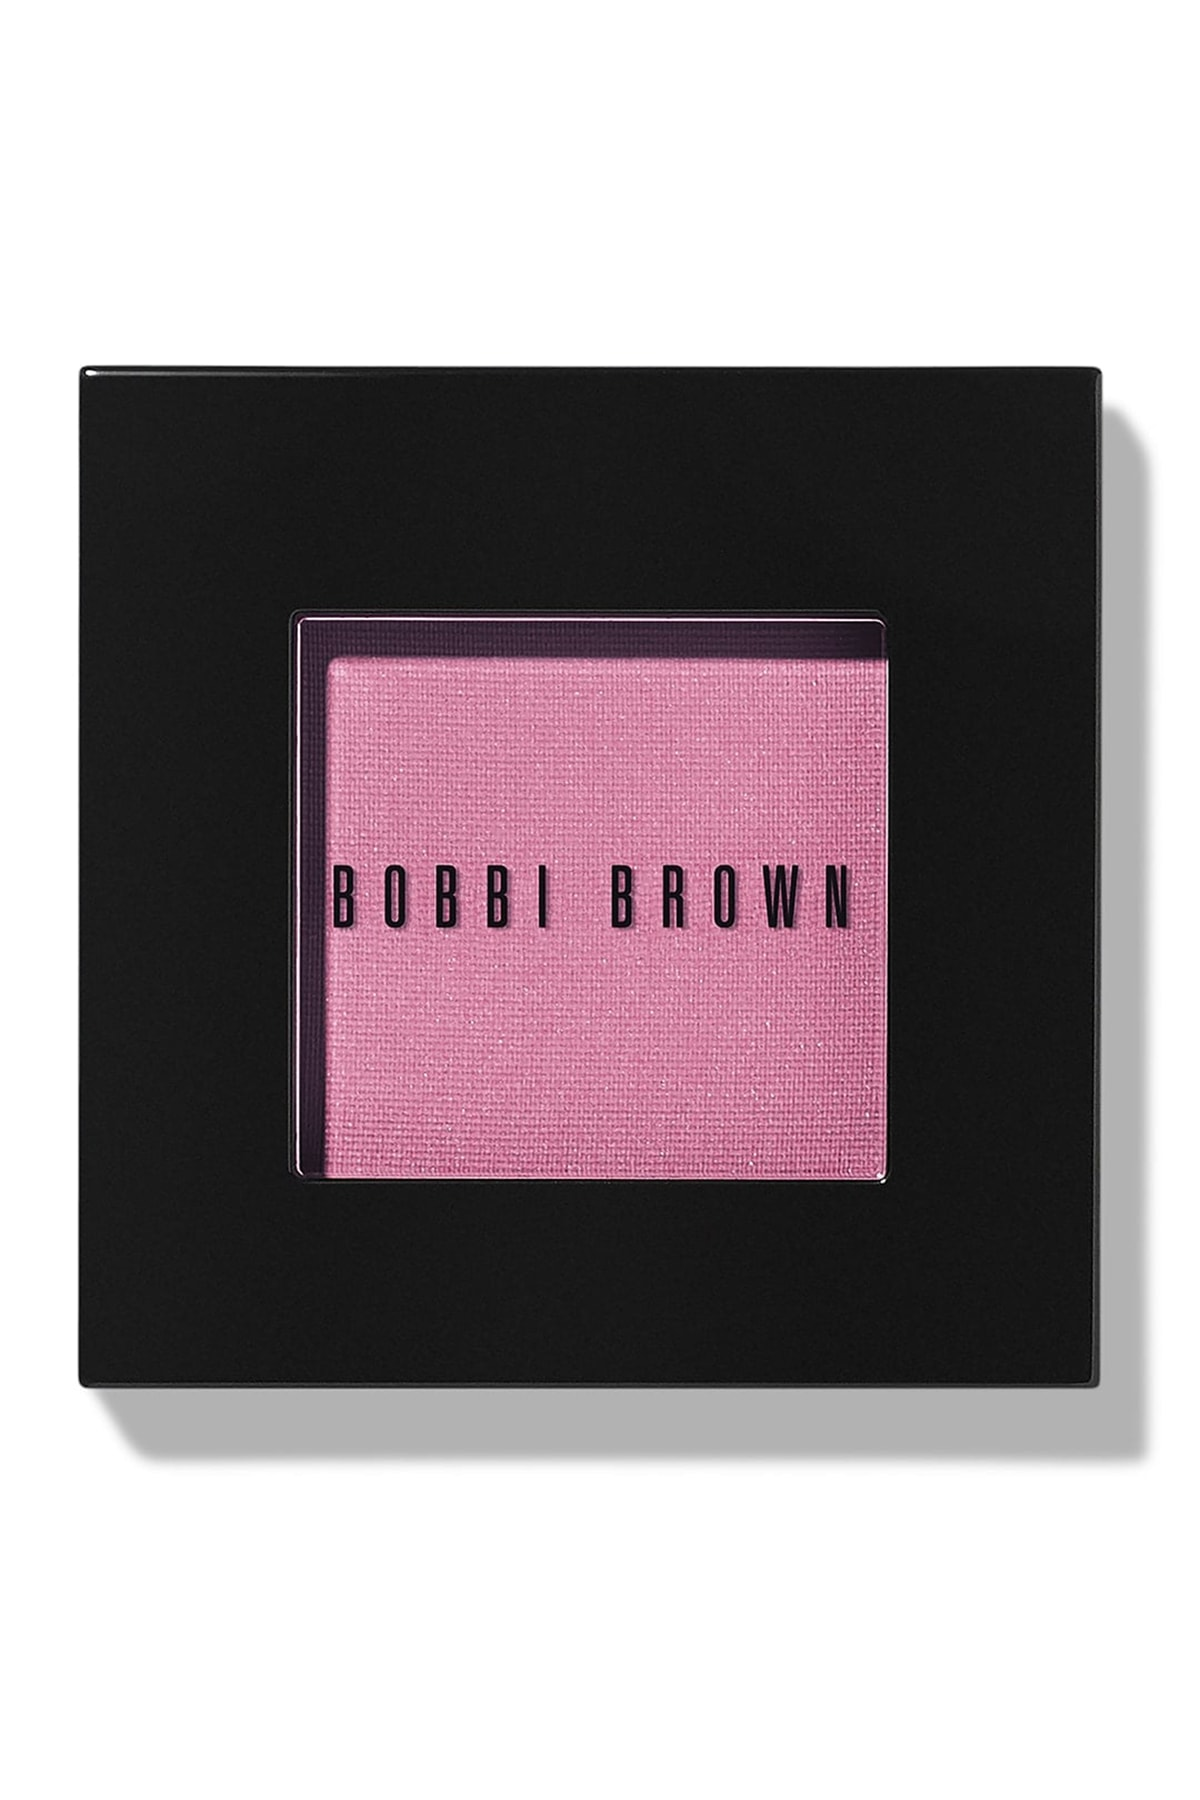 BOBBI BROWN Allık - Blush Pale Pink 3.7 g 716170059662